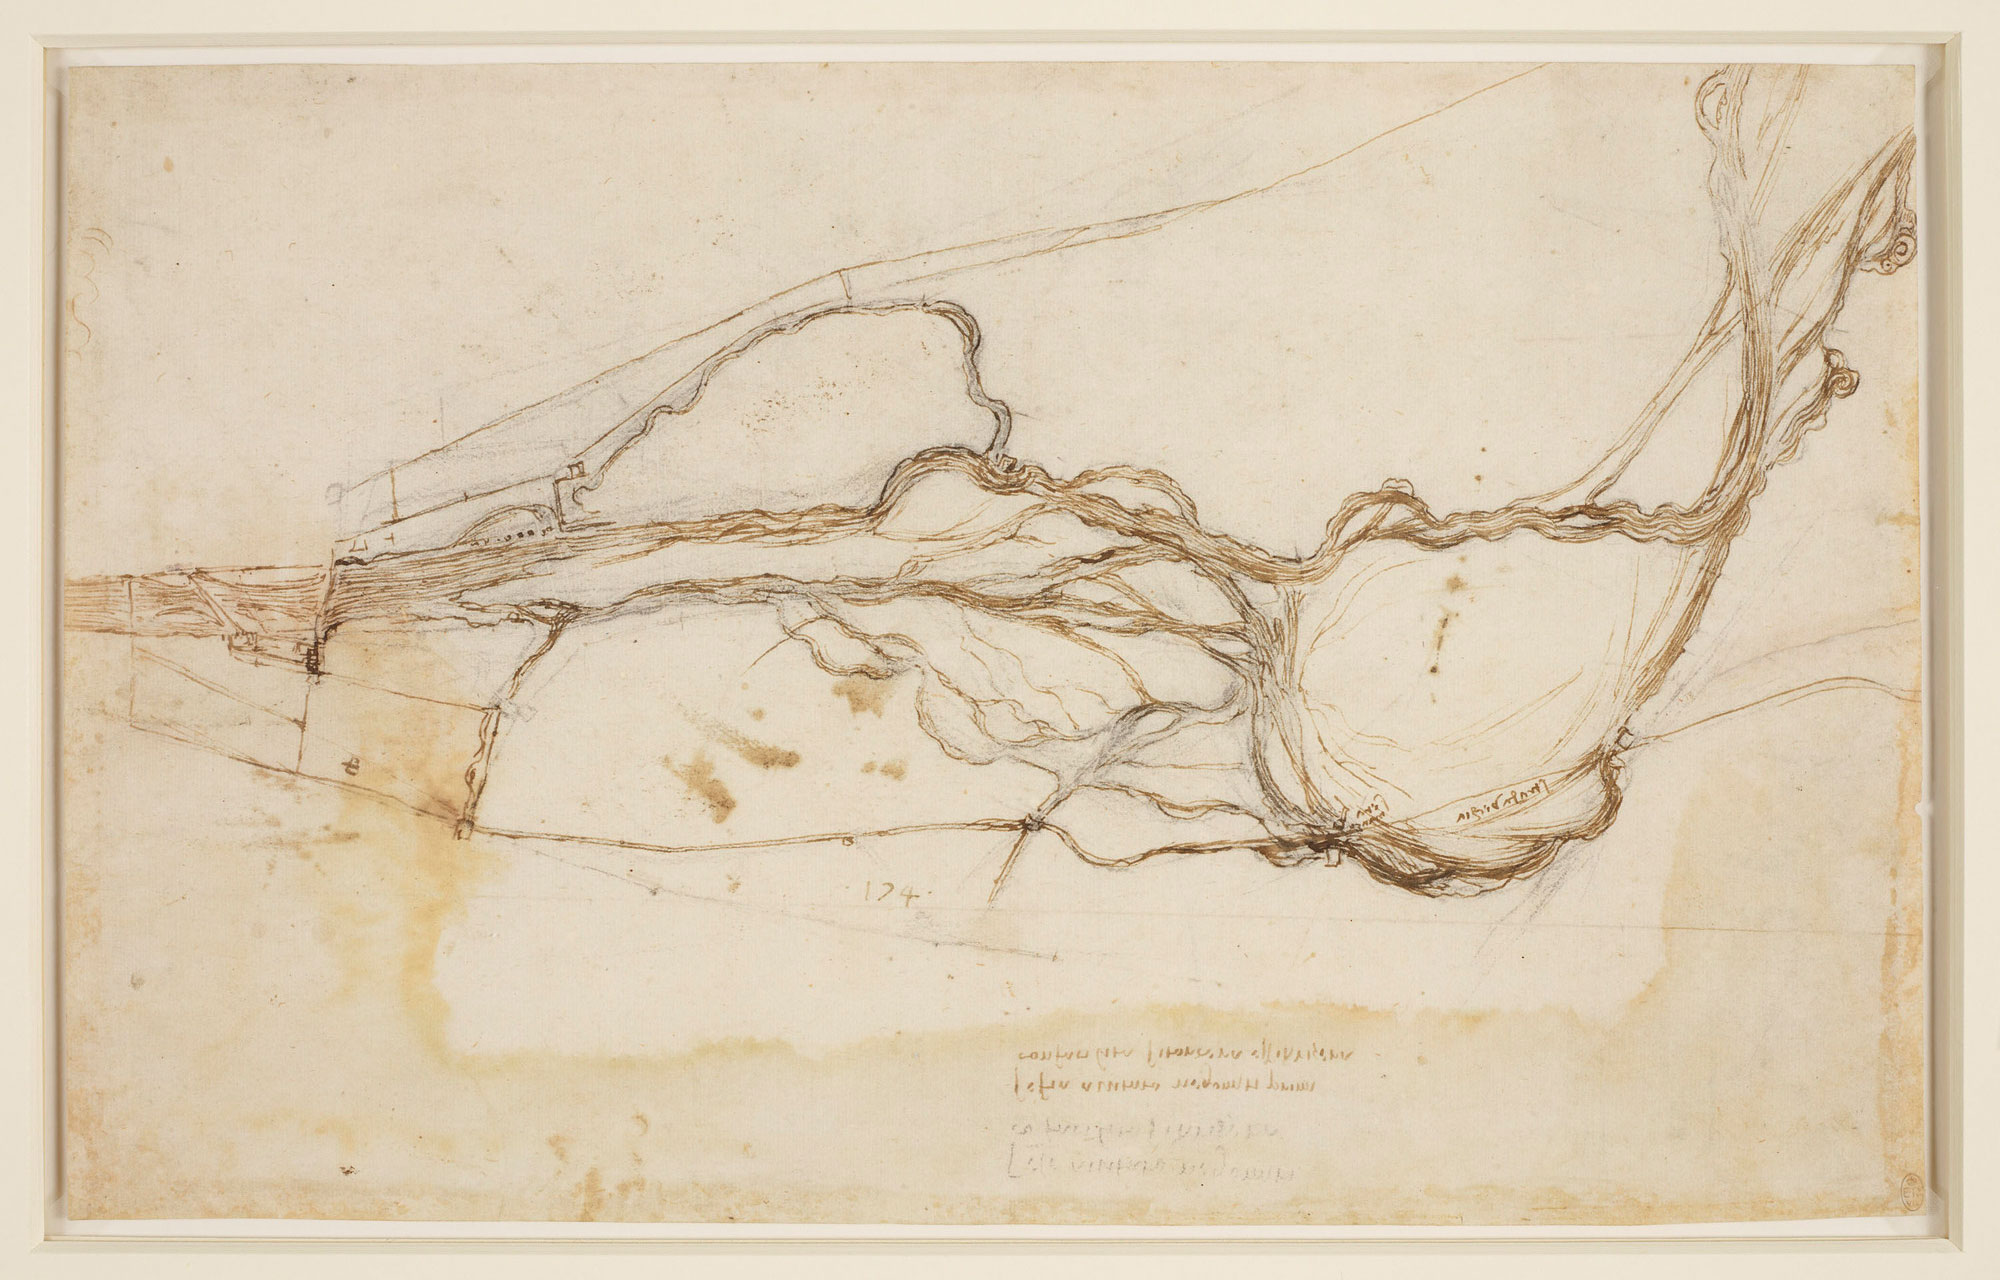 Image of da Vinci's sketch